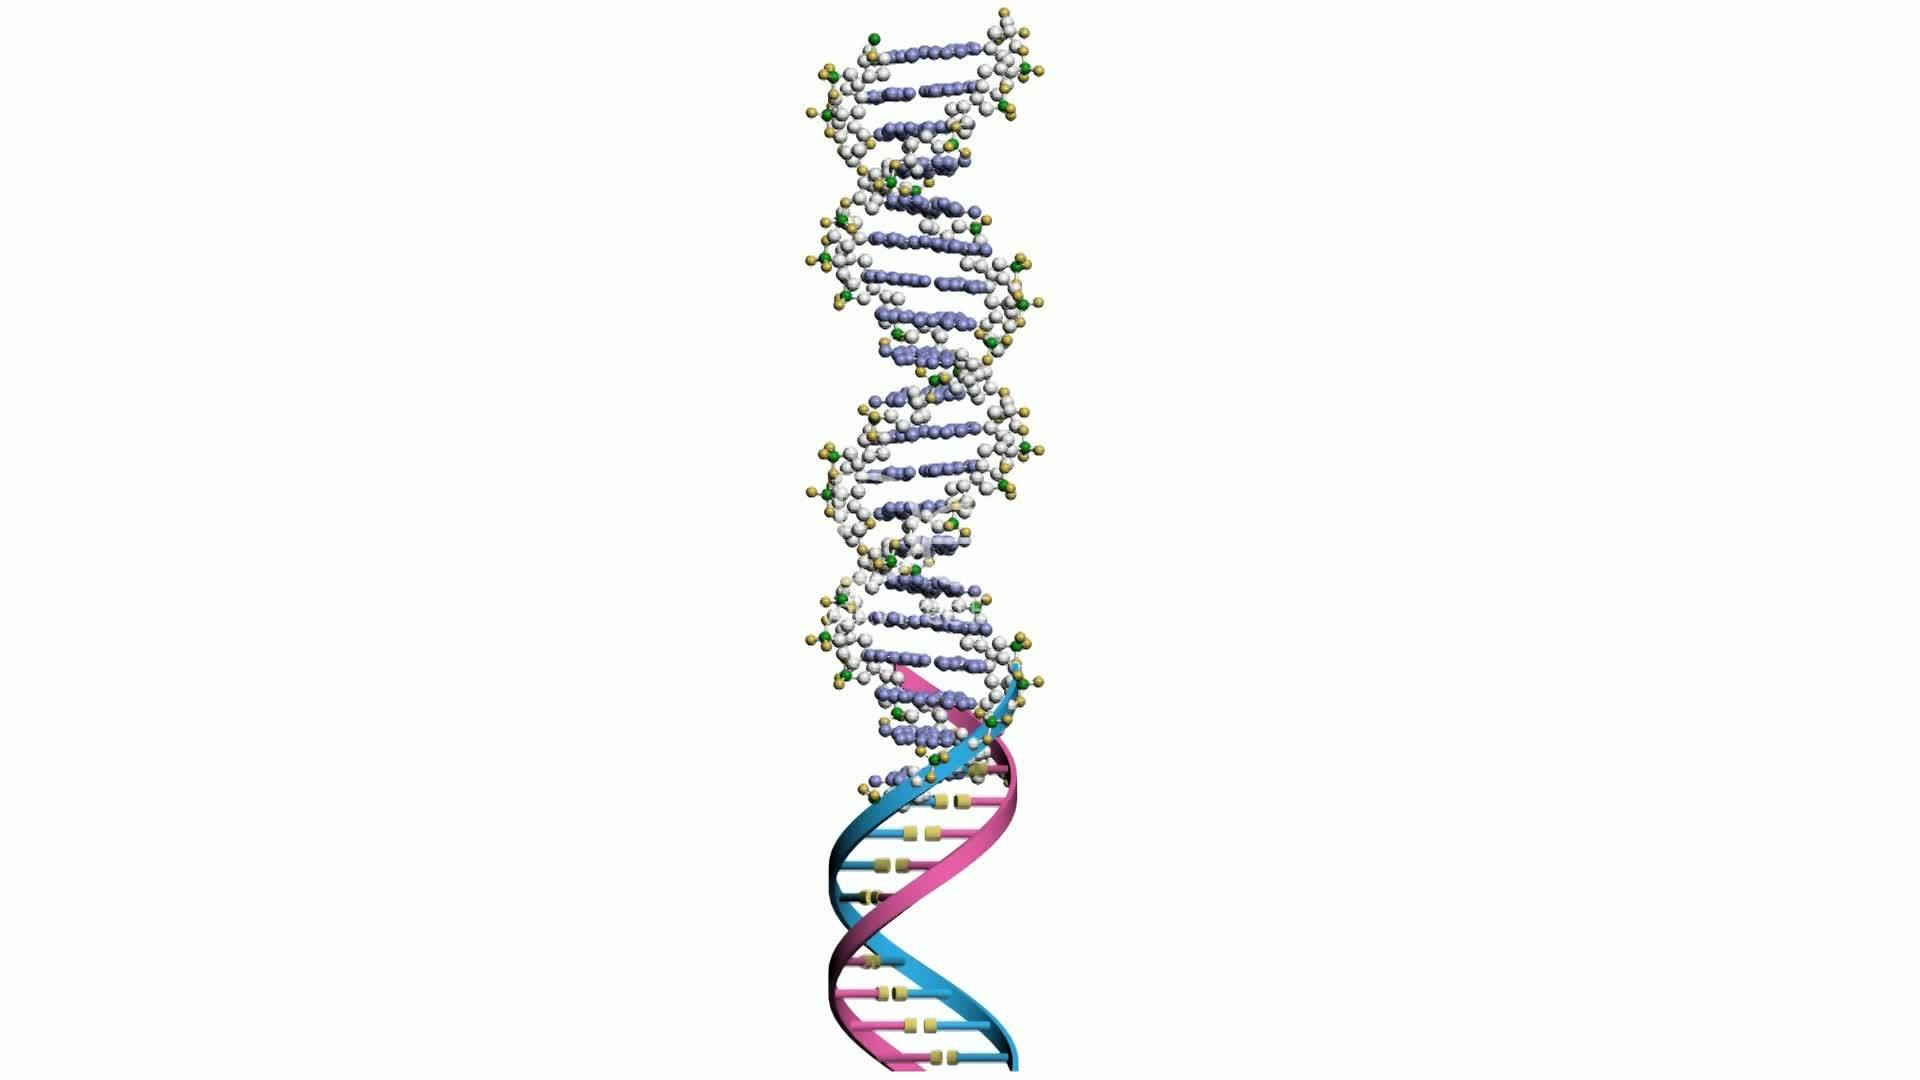 Dna Gene Genome Chromosome